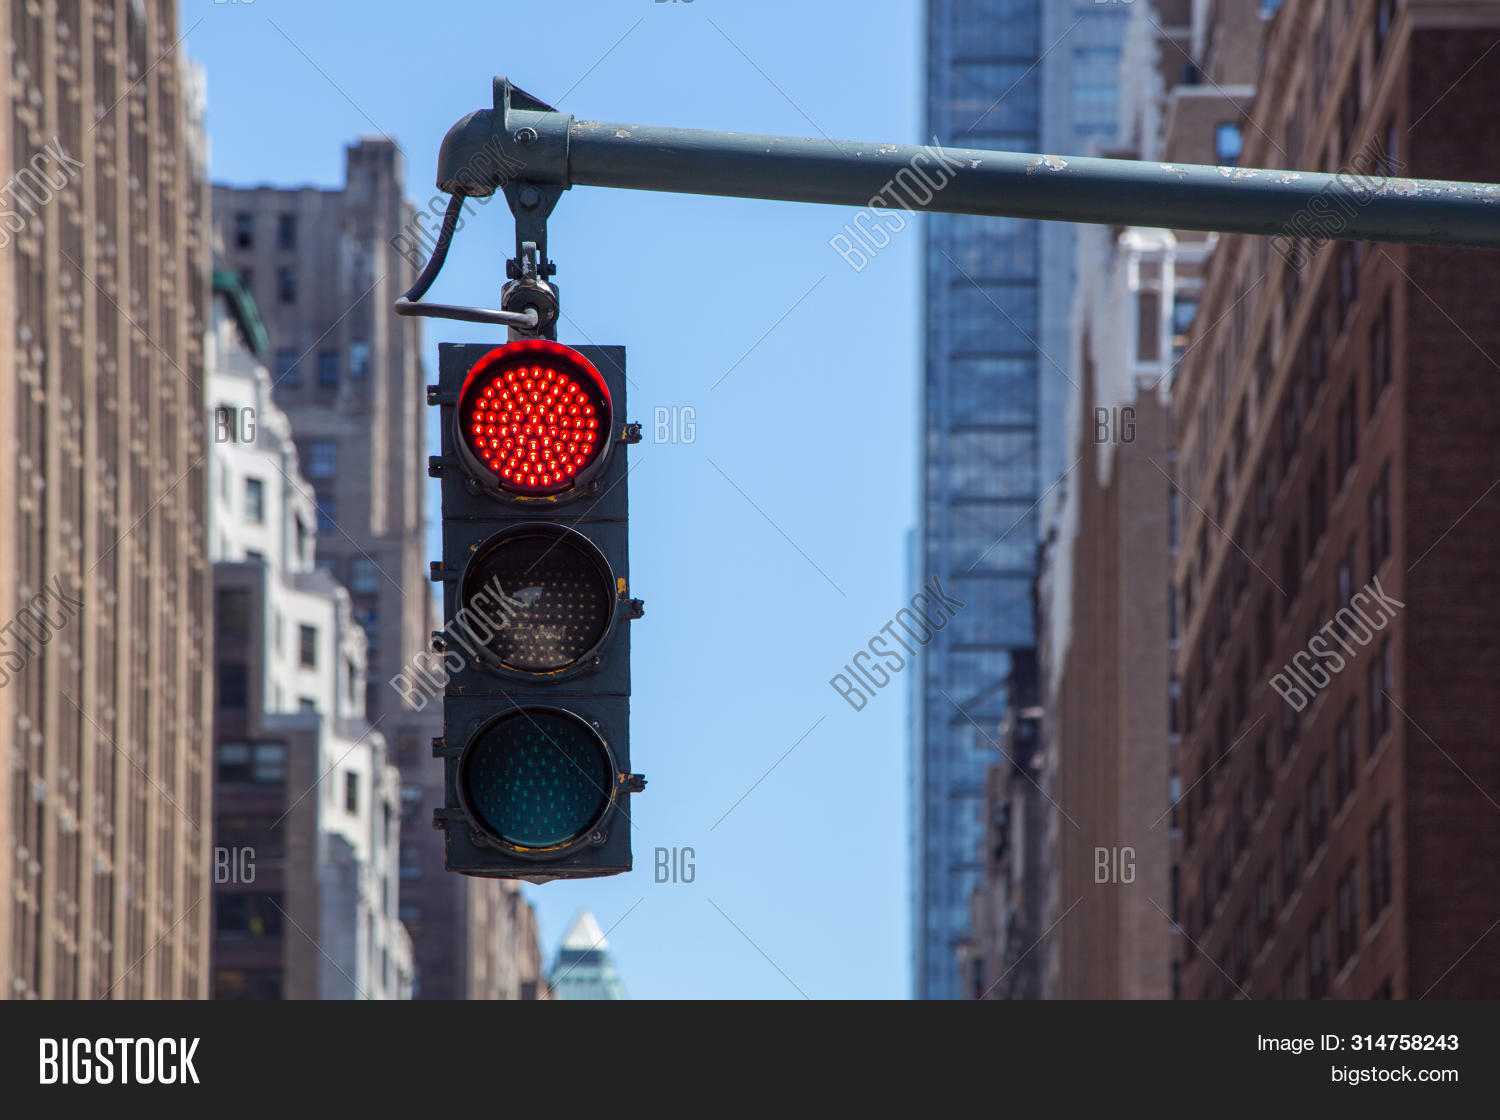 background,building,city,cityscape,color,control,cross,crossroad,downtown,driving,exterior,hanging,intersection,landscape,light,modern,outdoor,red,regulate,route,sign,signal,skyscraper,stop,stoplight,street,tower,town,traffic,transportation,urban,warning,way,york